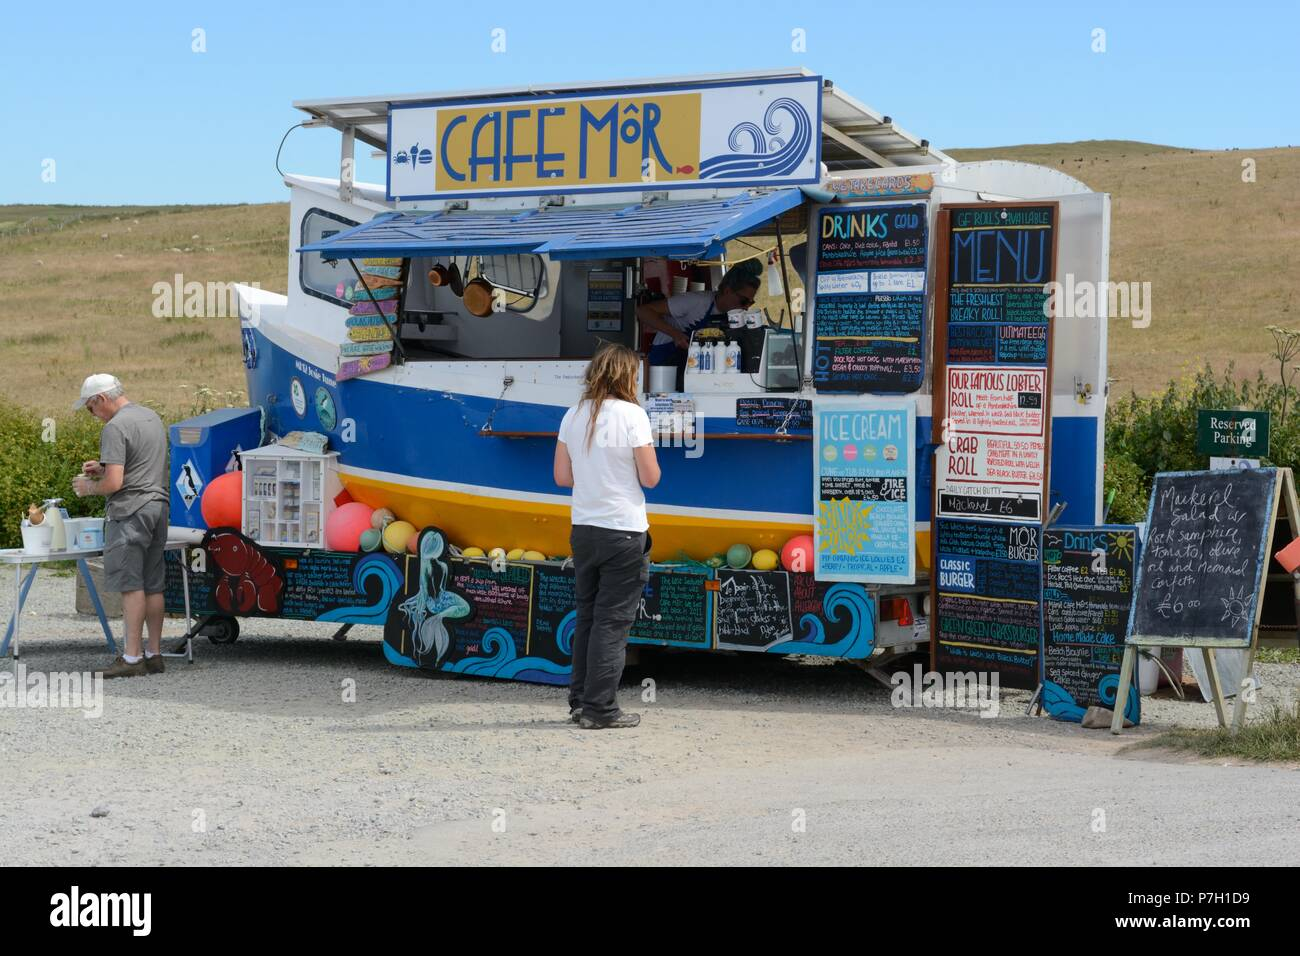 Solar powered food van shaped like a boat Cafe Mor Freshwater West Pembrokeshire Wales Cymru UK - Stock Image